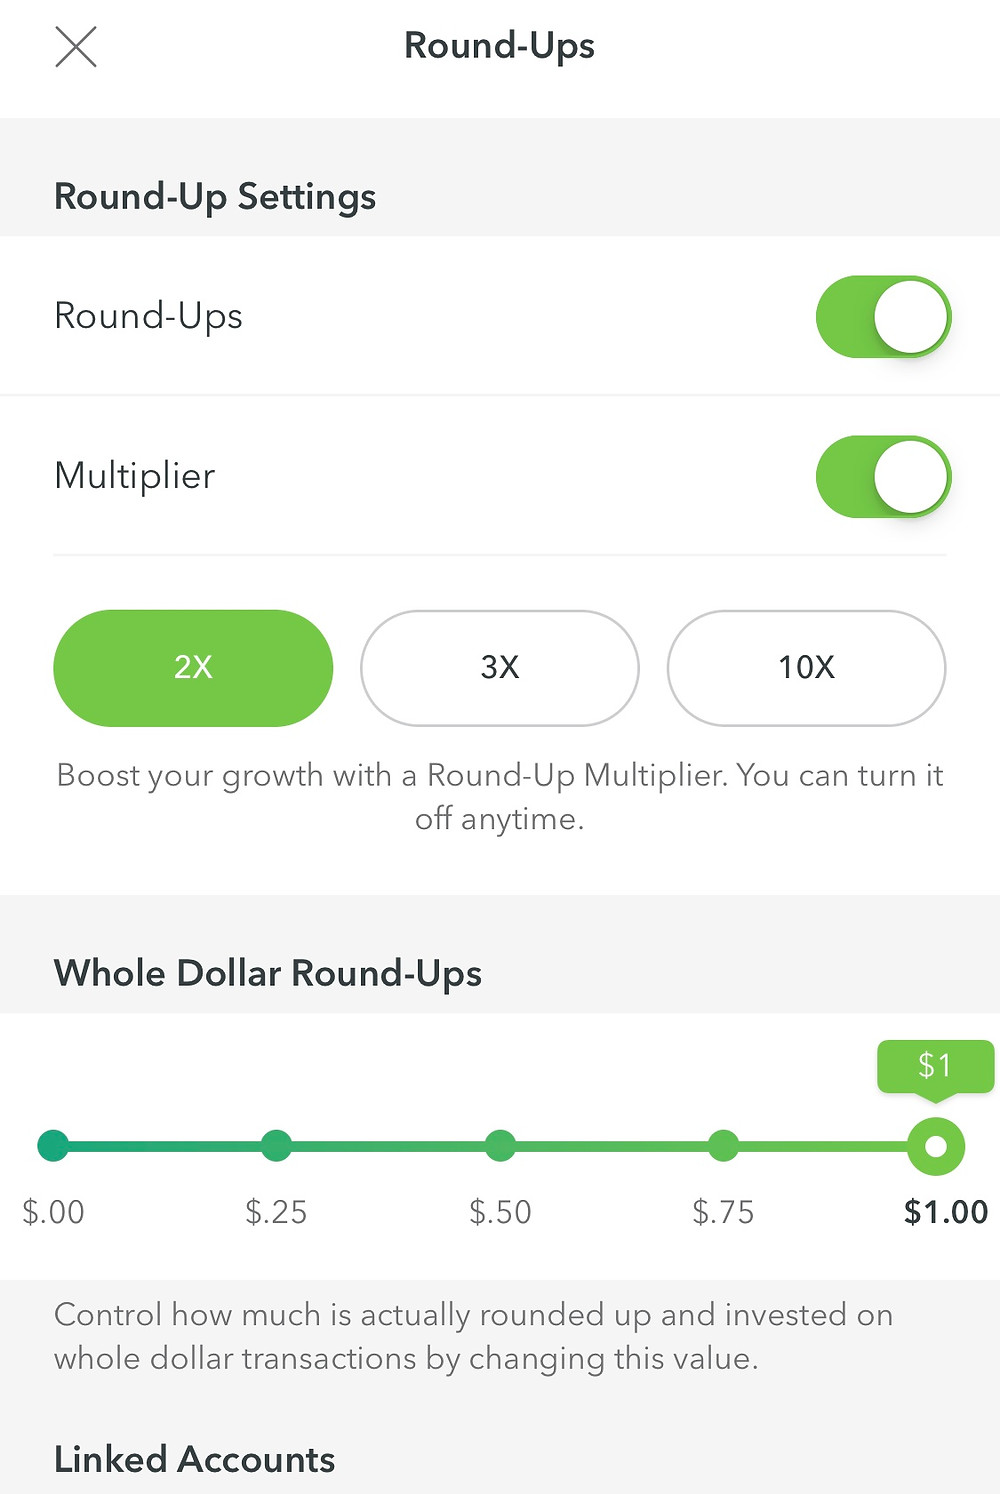 Acorns app screen showing round ups and multiplier settings